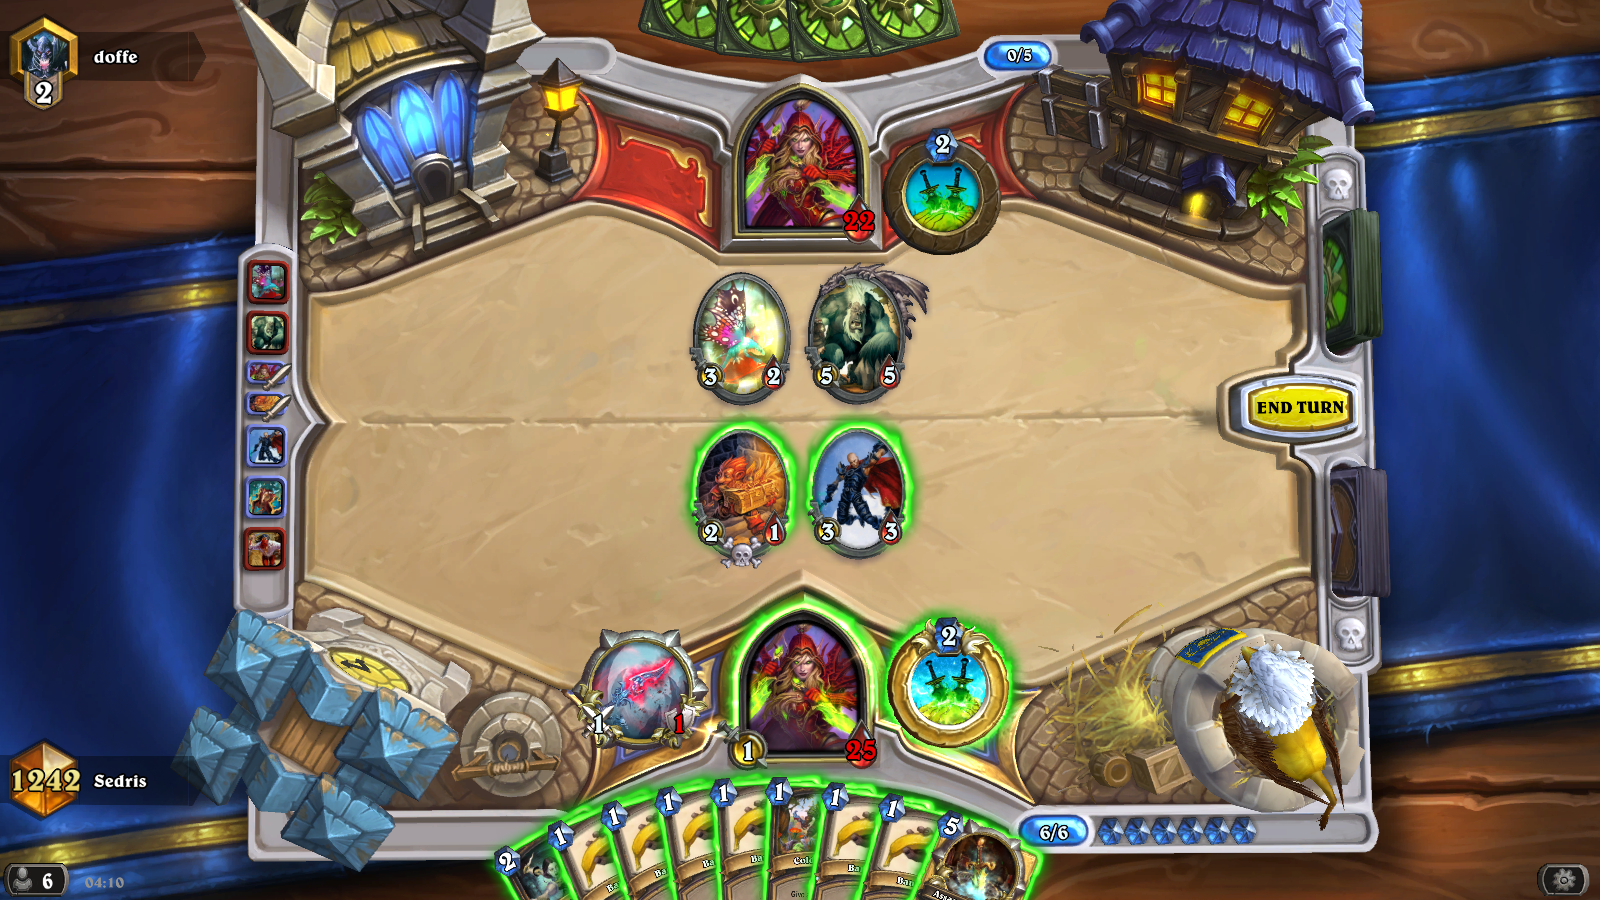 hearthstone_screenshot9jws.png